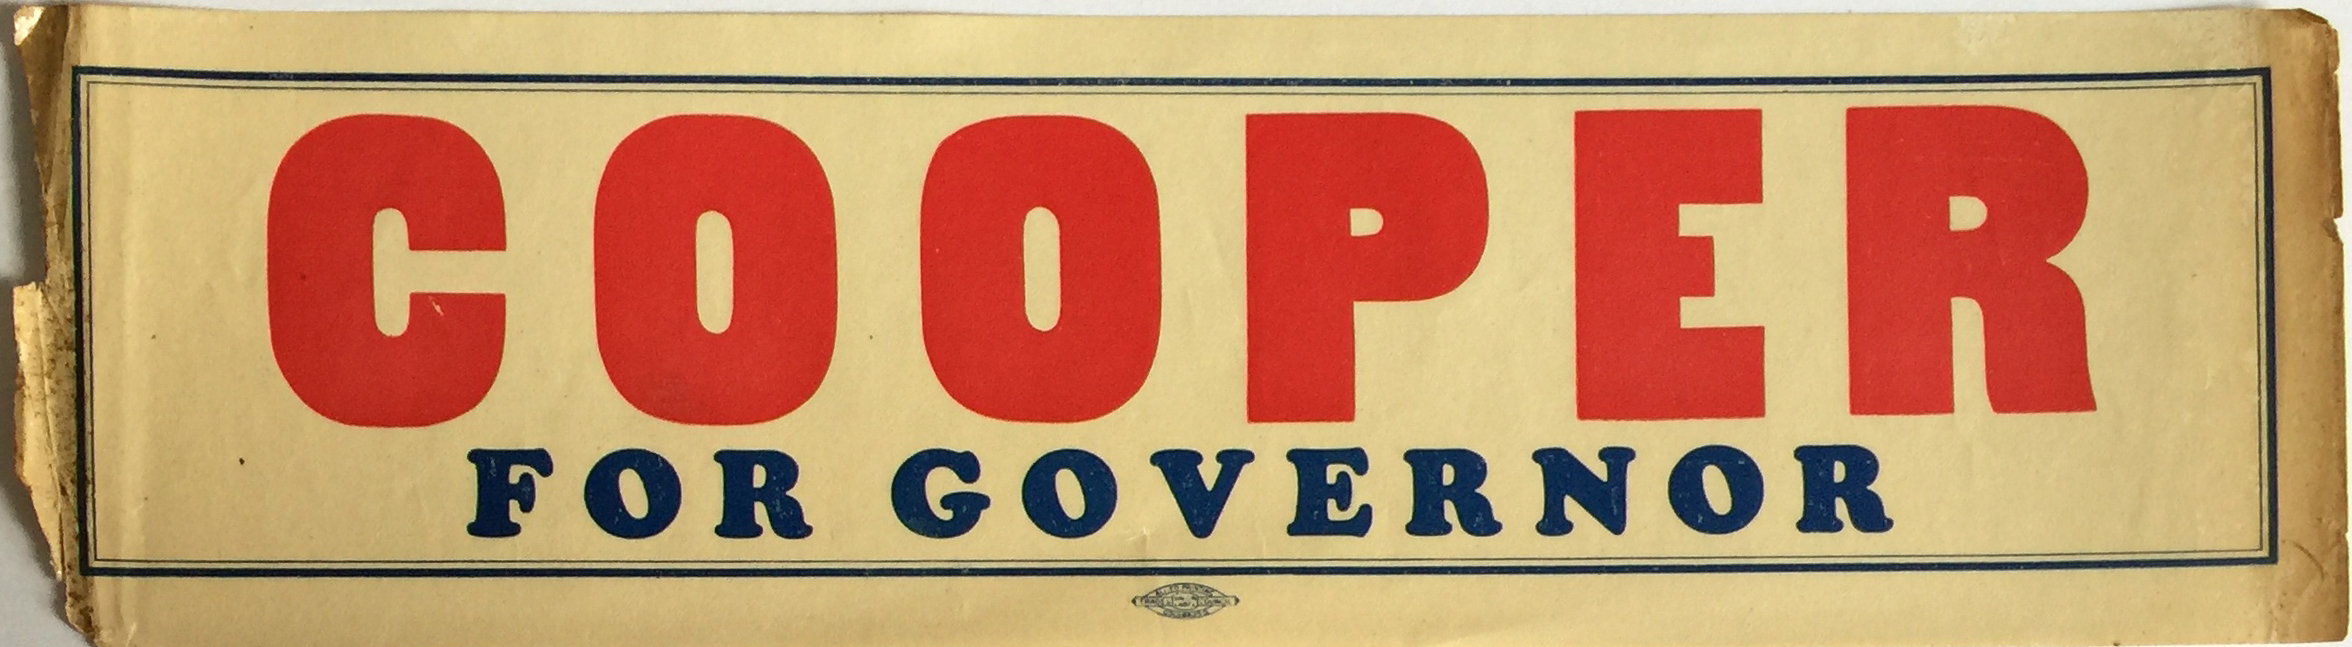 Sticker-gov1928 COOPER.jpg